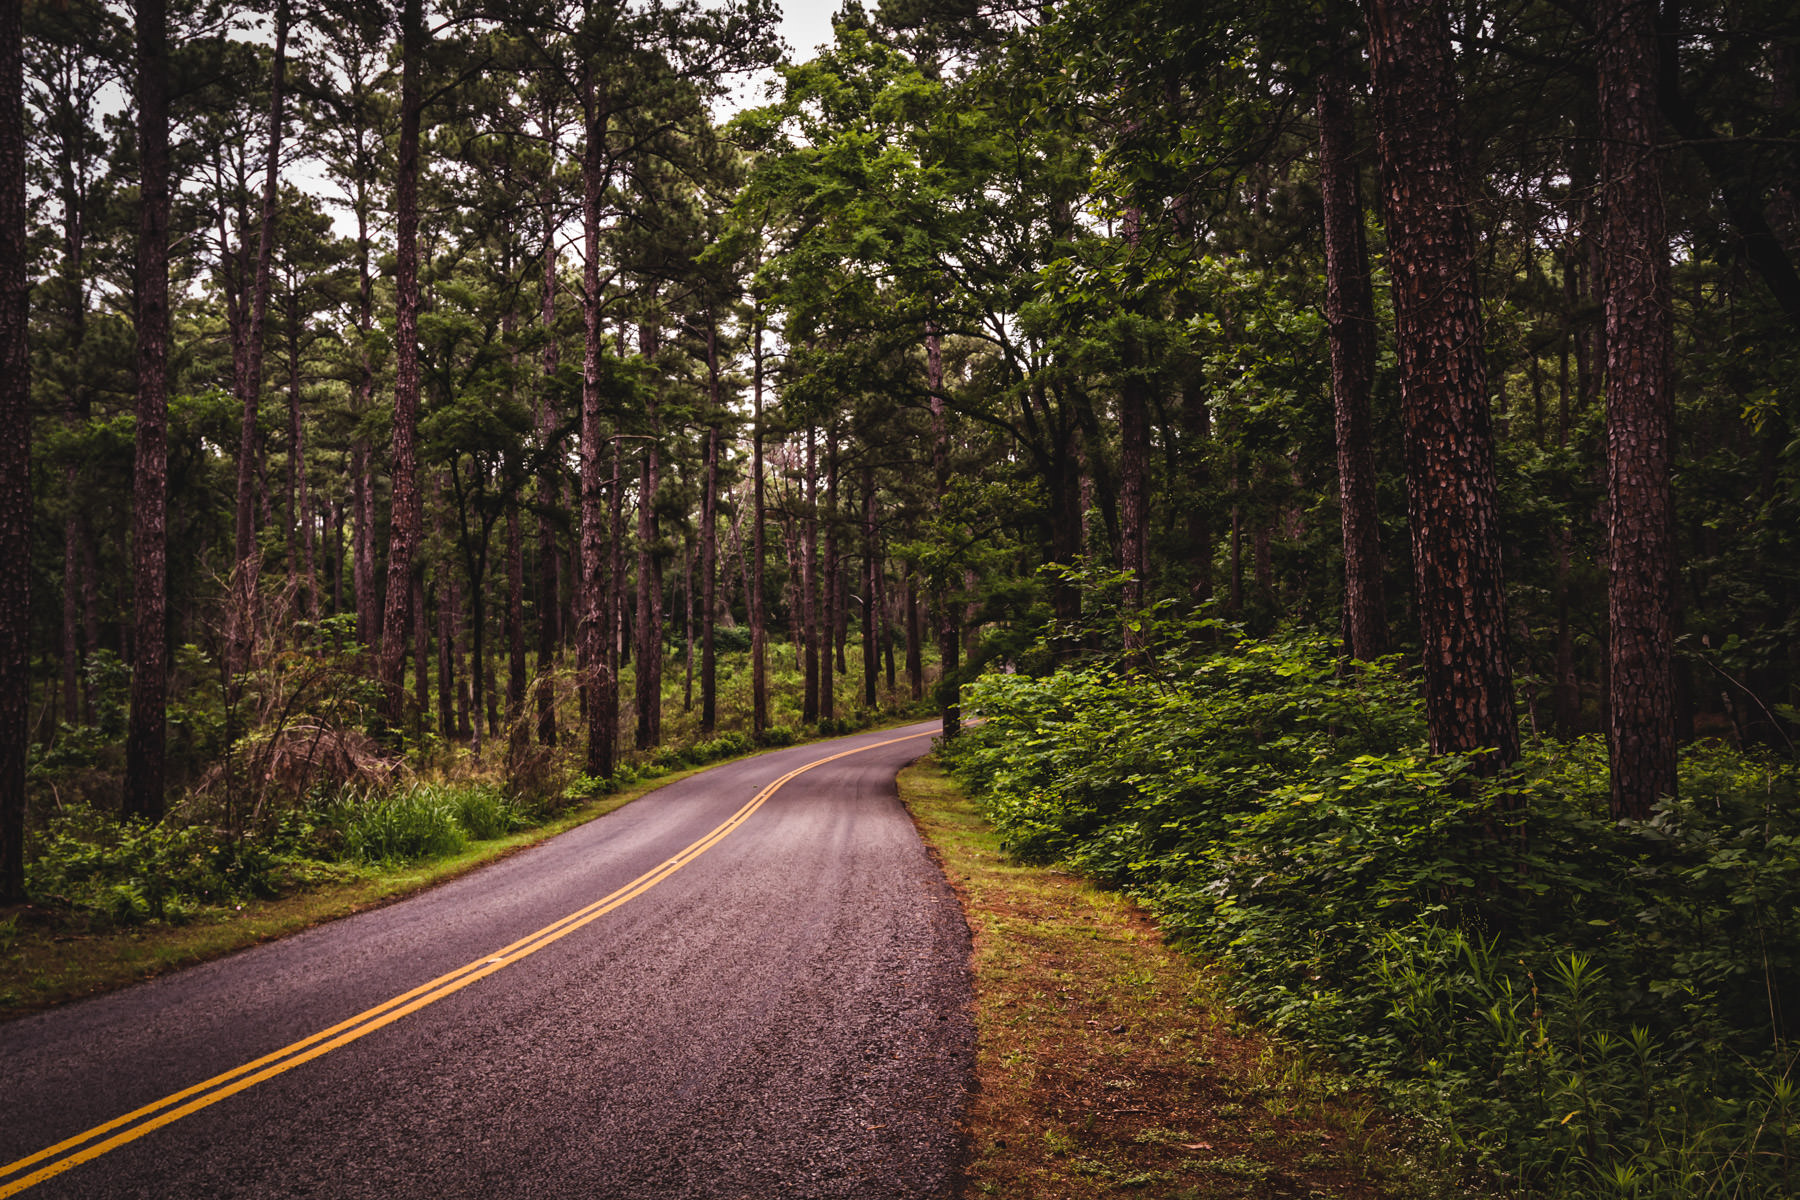 A road winds through the forest at Tyler State Park, Texas.